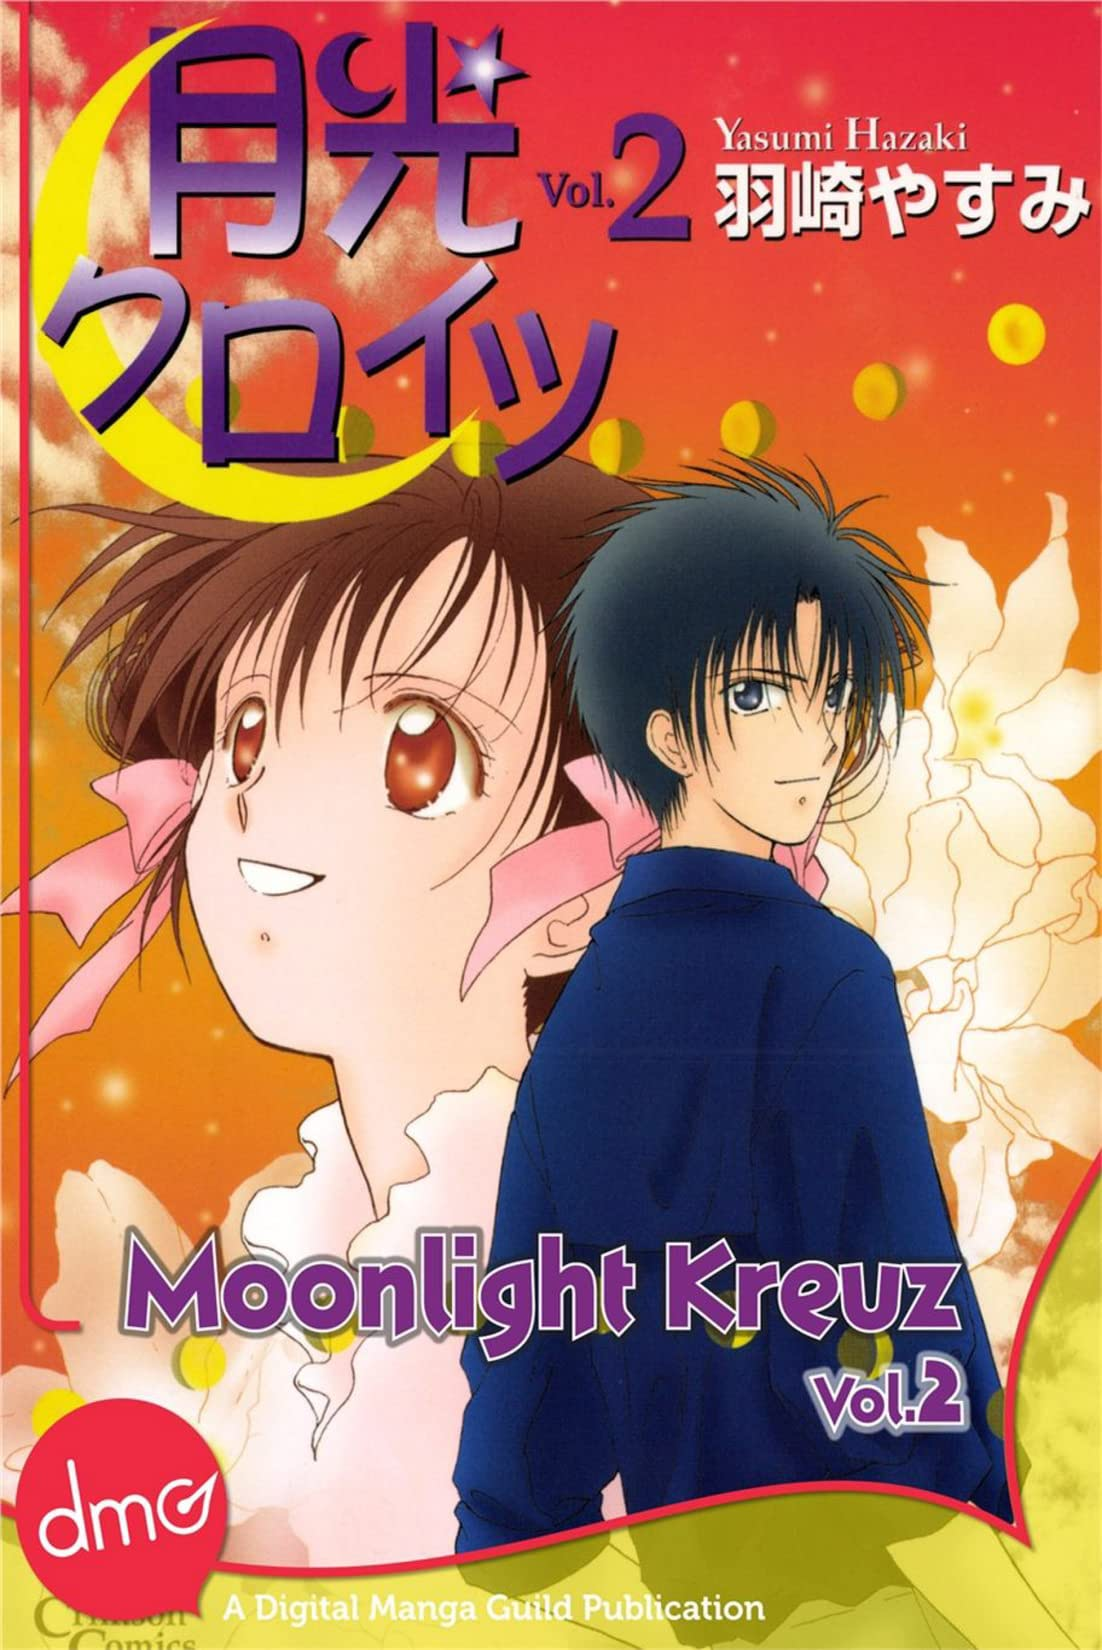 Moonlight Kreuz Vol. 2